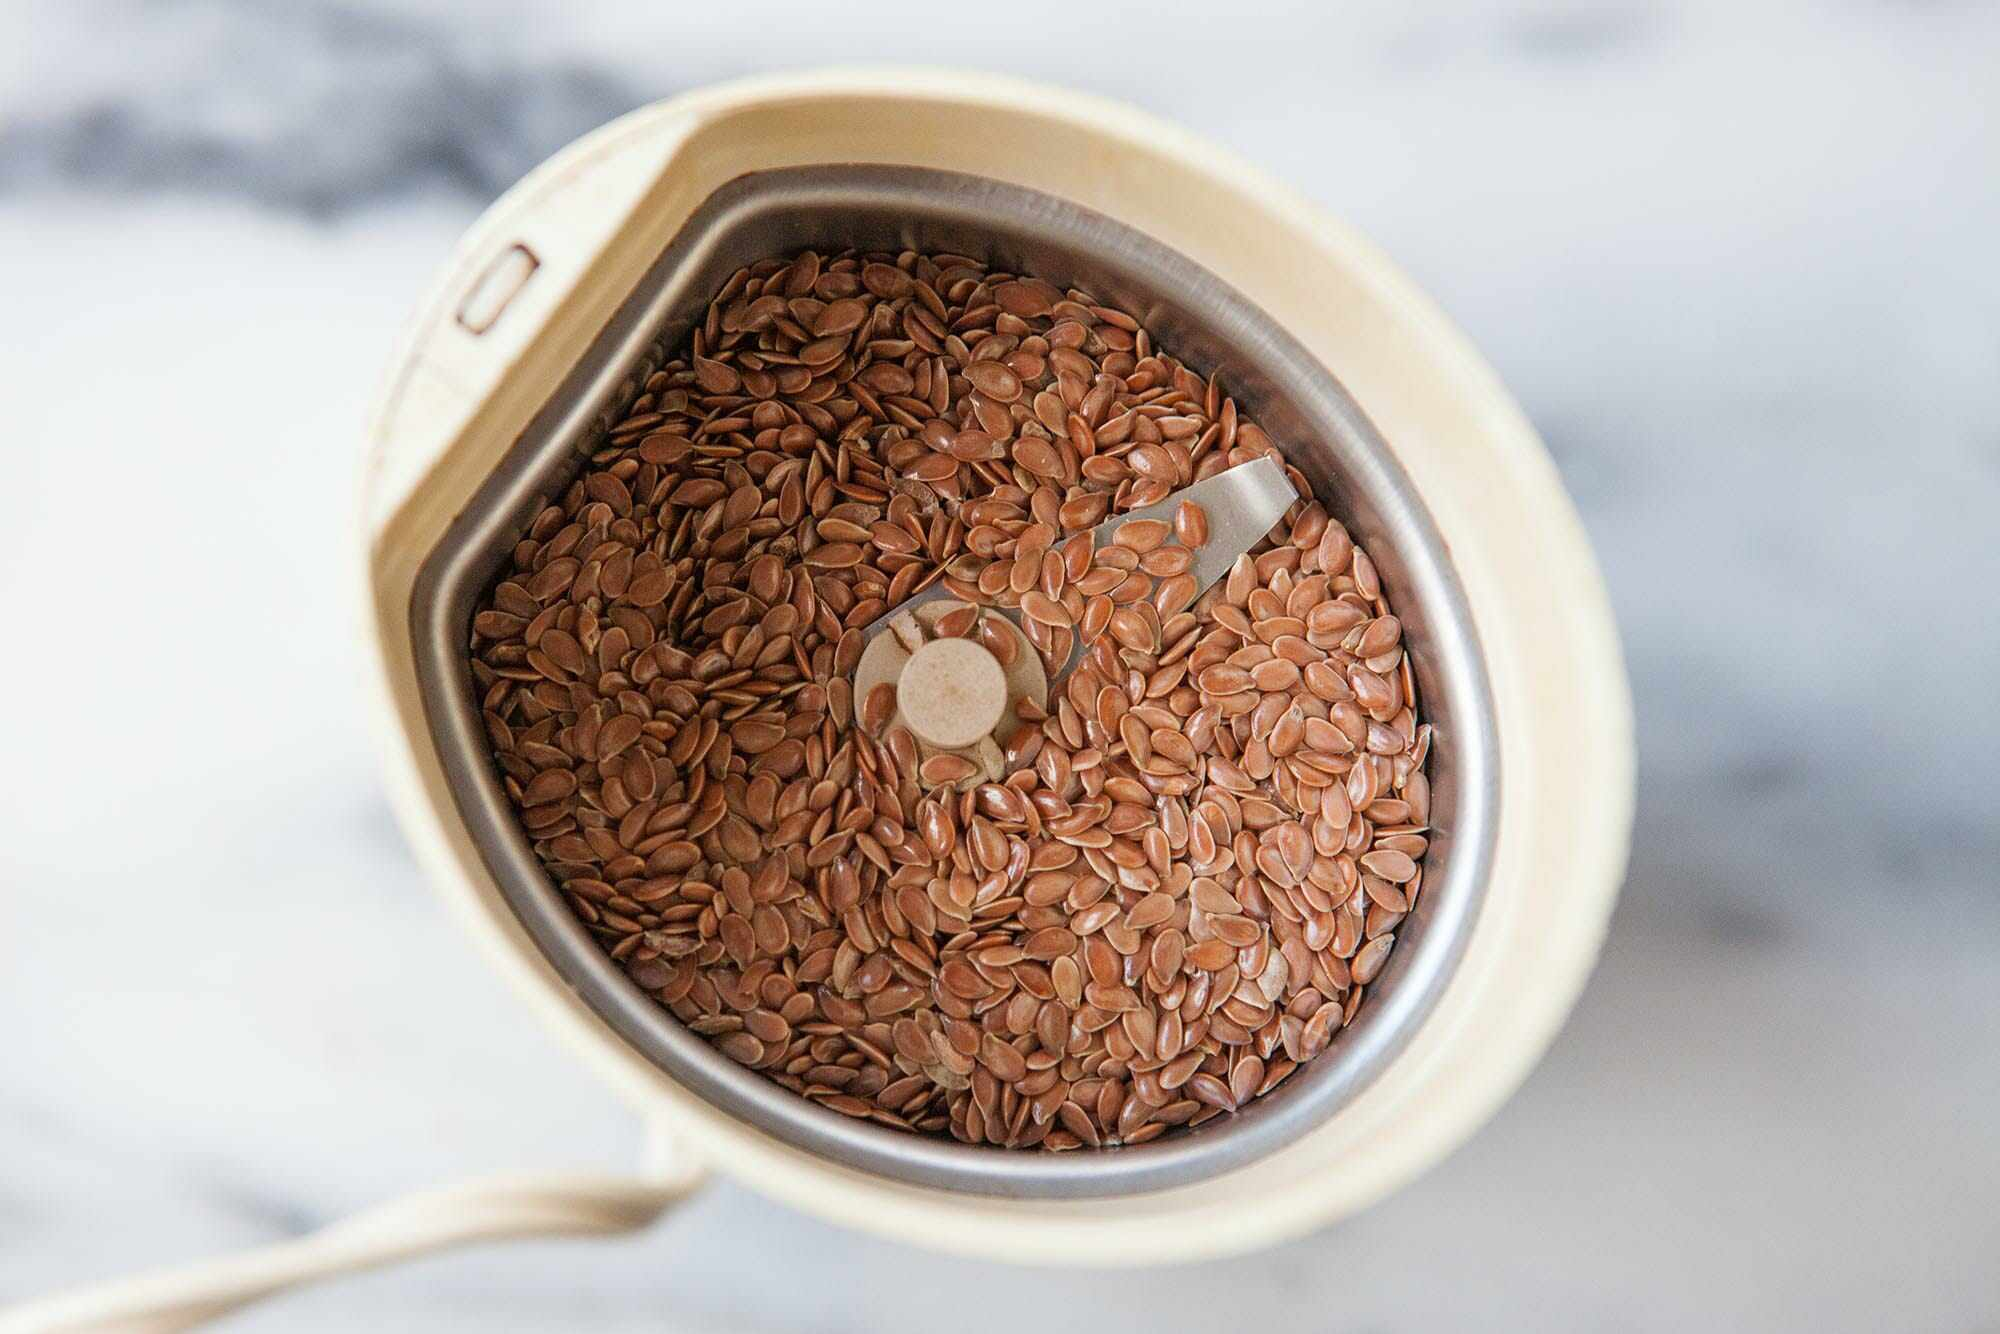 Flax seed egg replacement